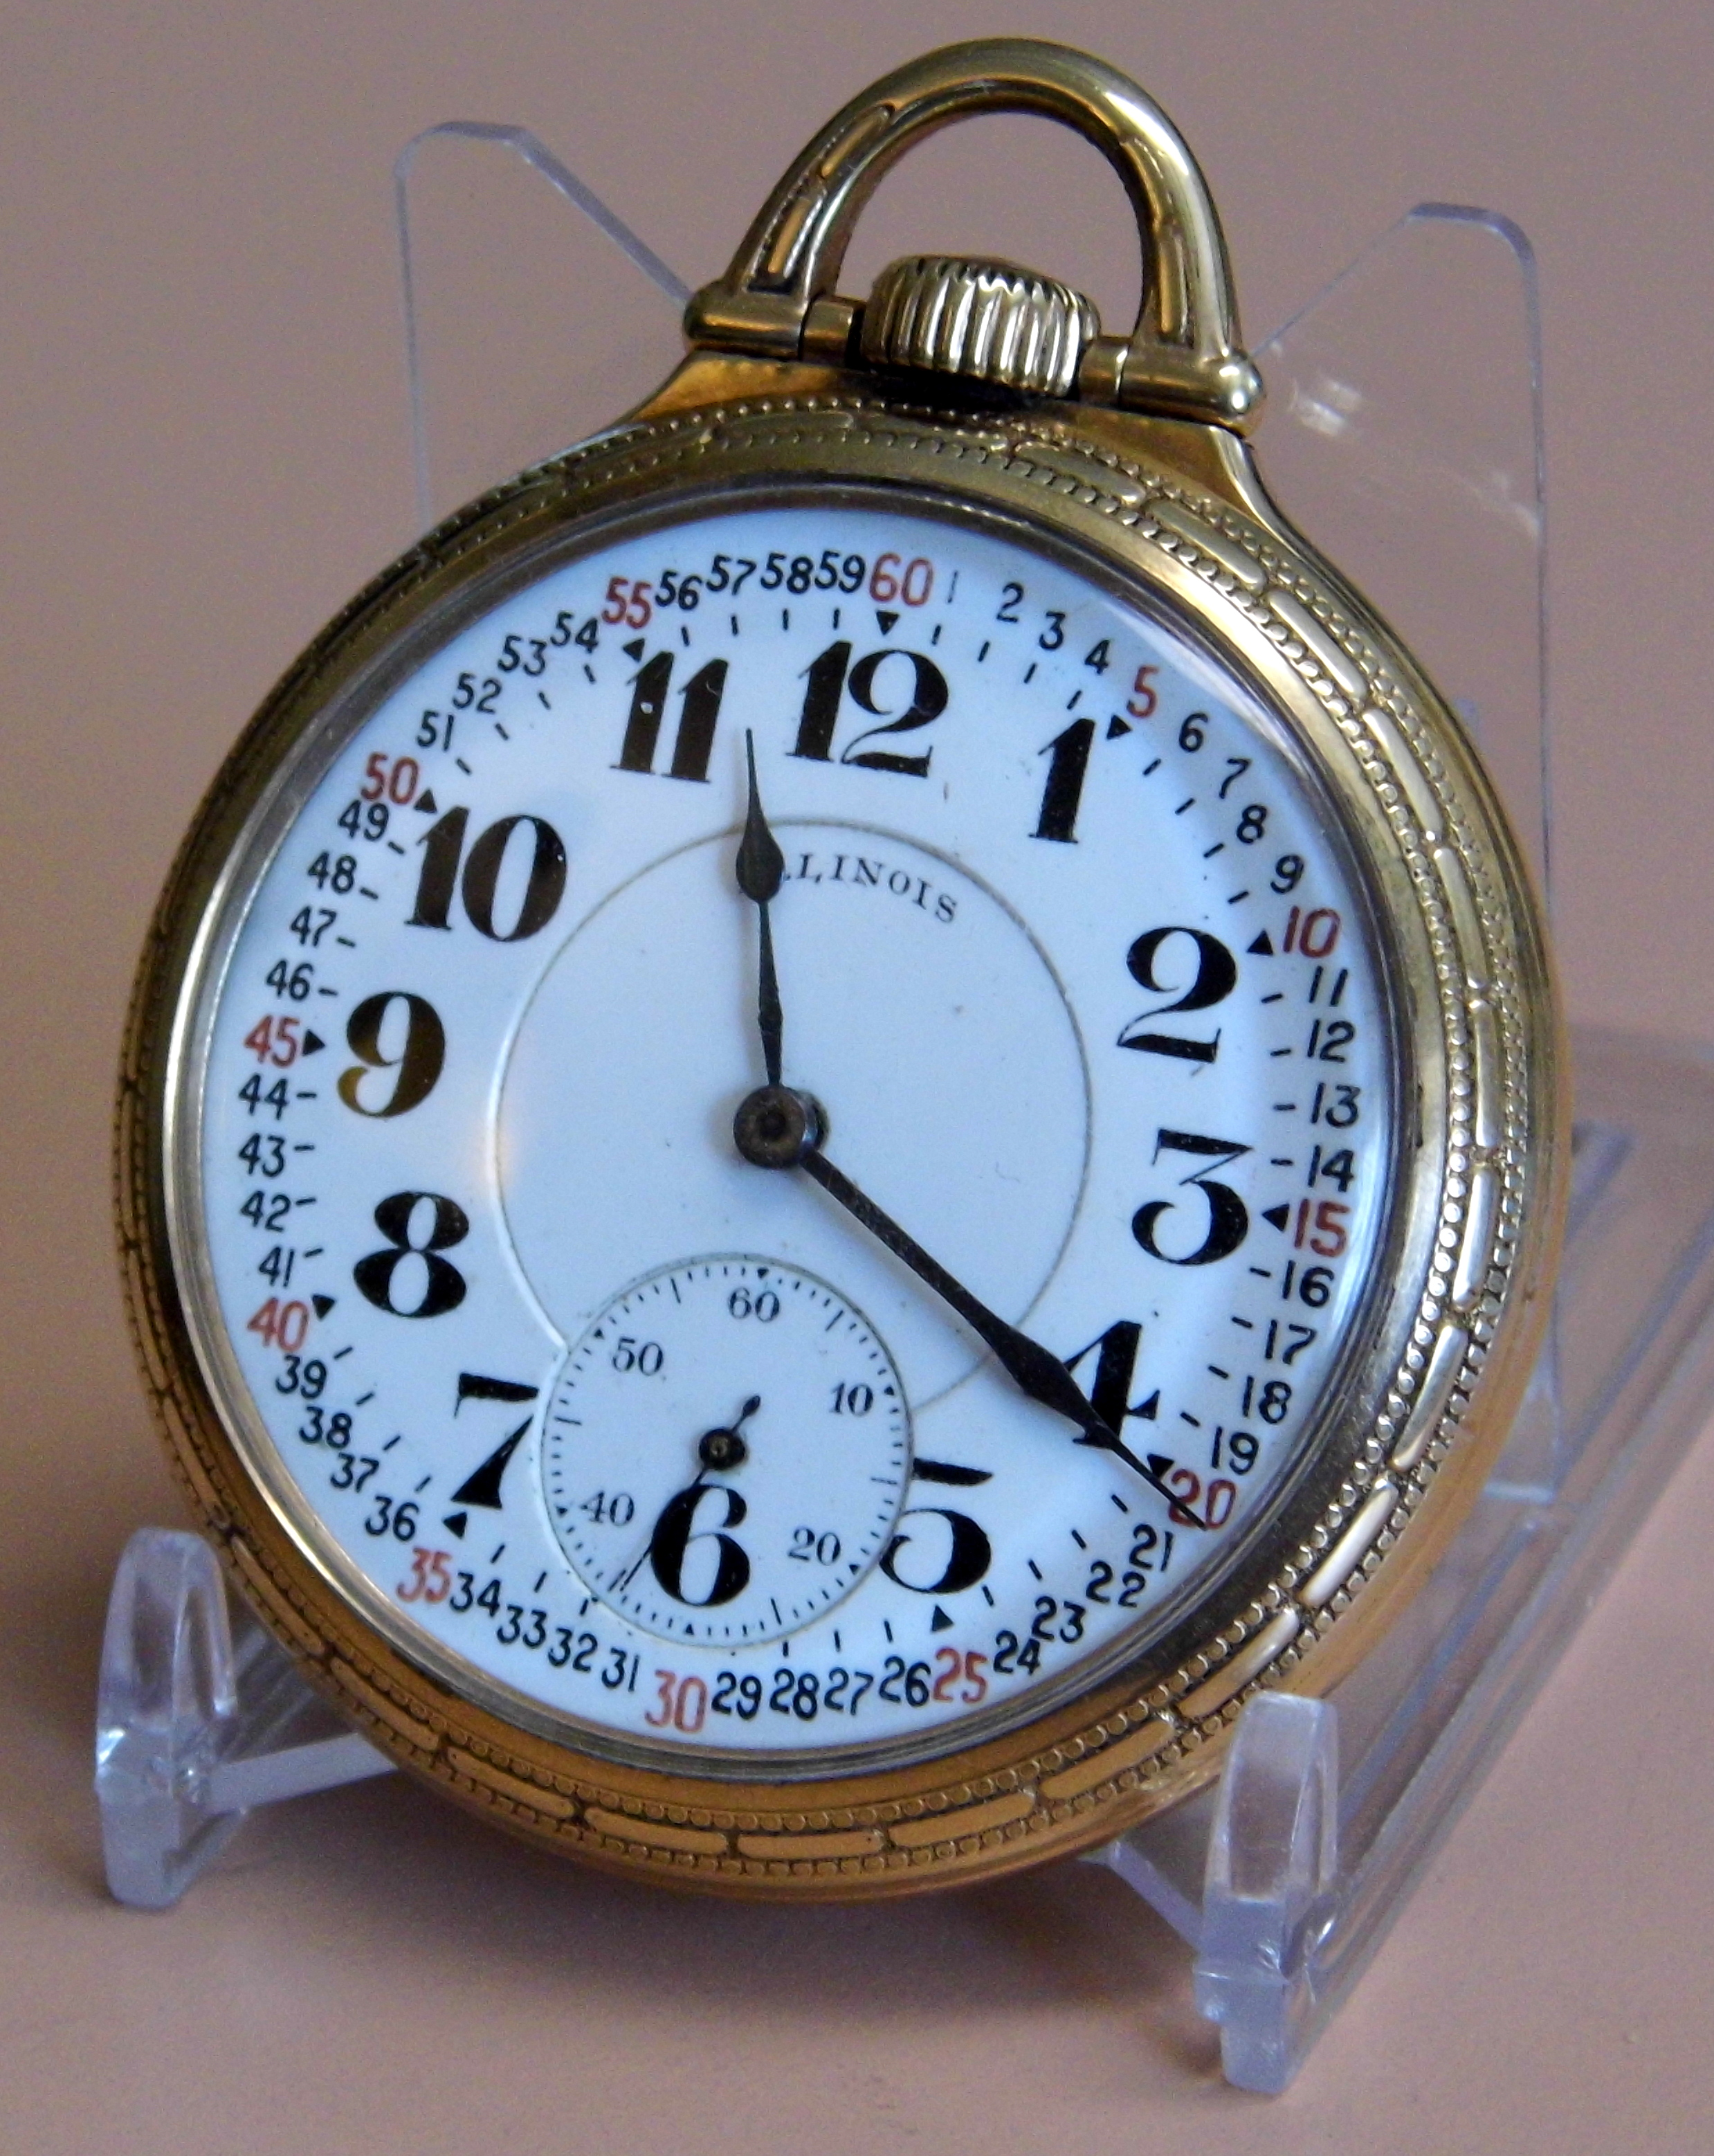 dating illinois pocket watch National association of watch and clock chapter on early american pocket watches for dating english silver pocket watch.